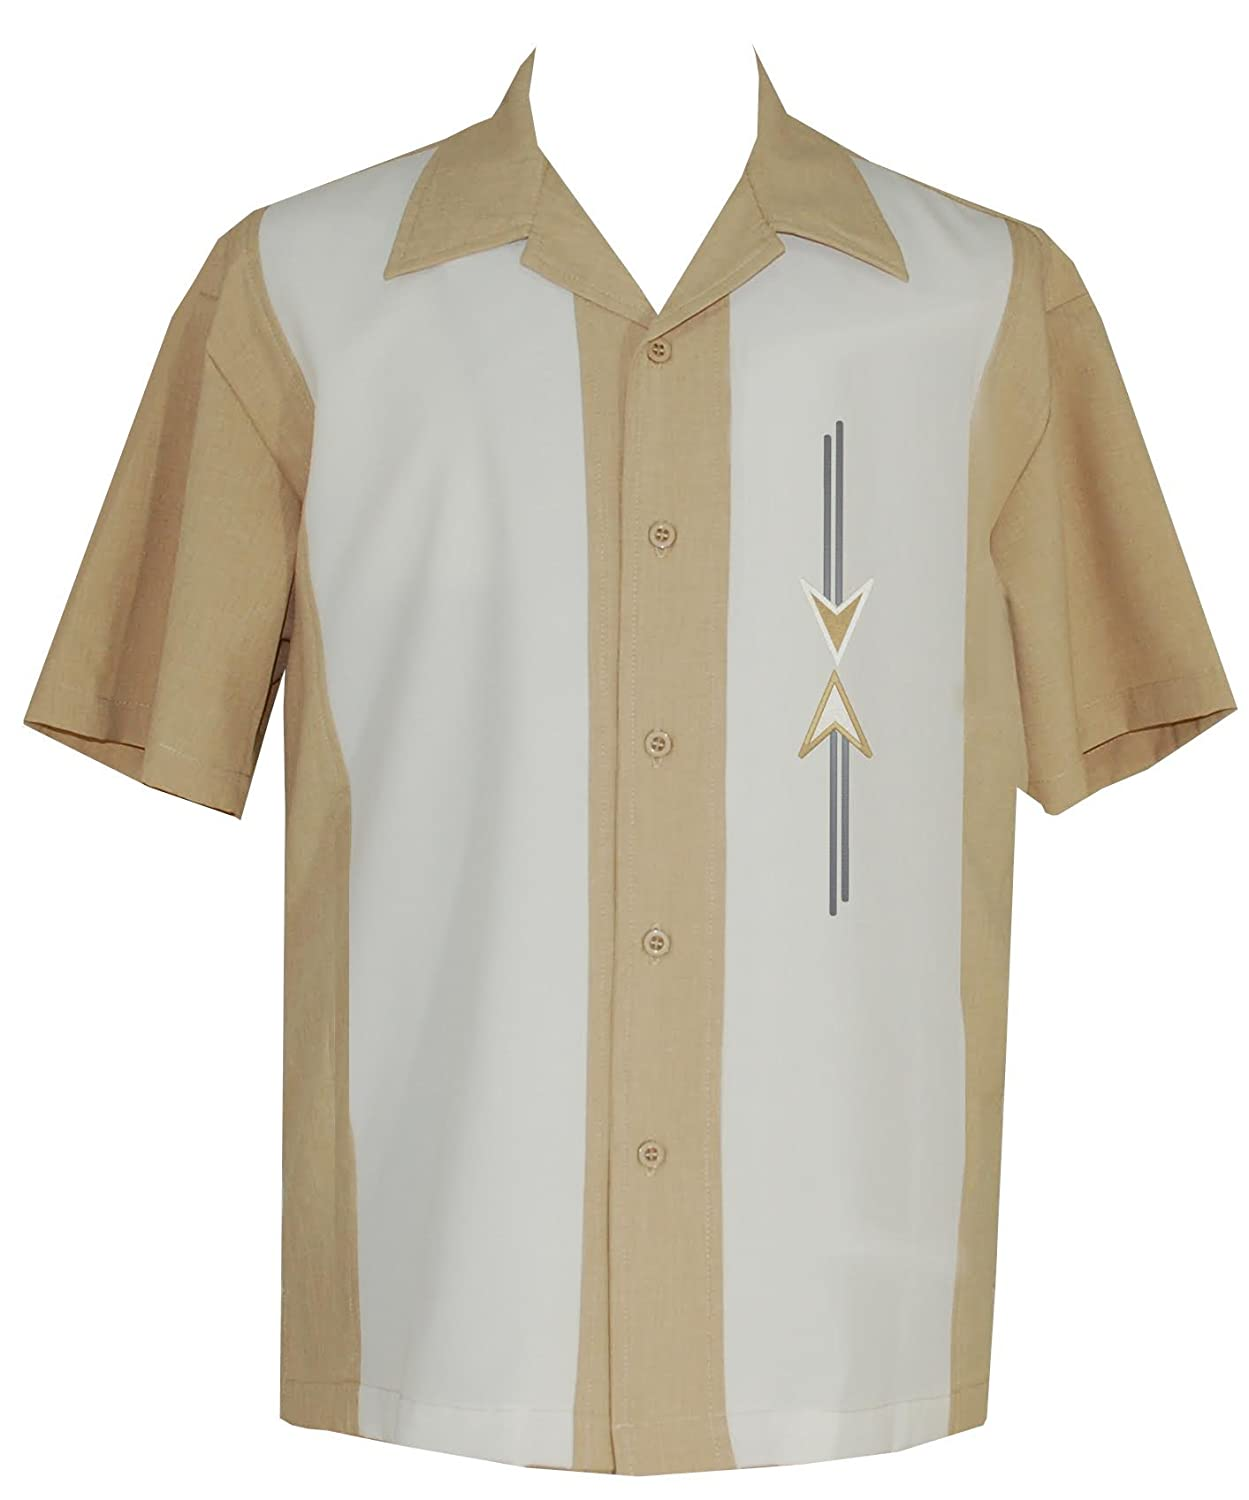 Vintage Shirts – Mens – Retro Shirts Lucky Paradise Mens Camp Shirt Vintage Cuban Style Bowling Shirt ~ Tom Collins ~ Guayabera Dress Shirt Style $54.95 AT vintagedancer.com